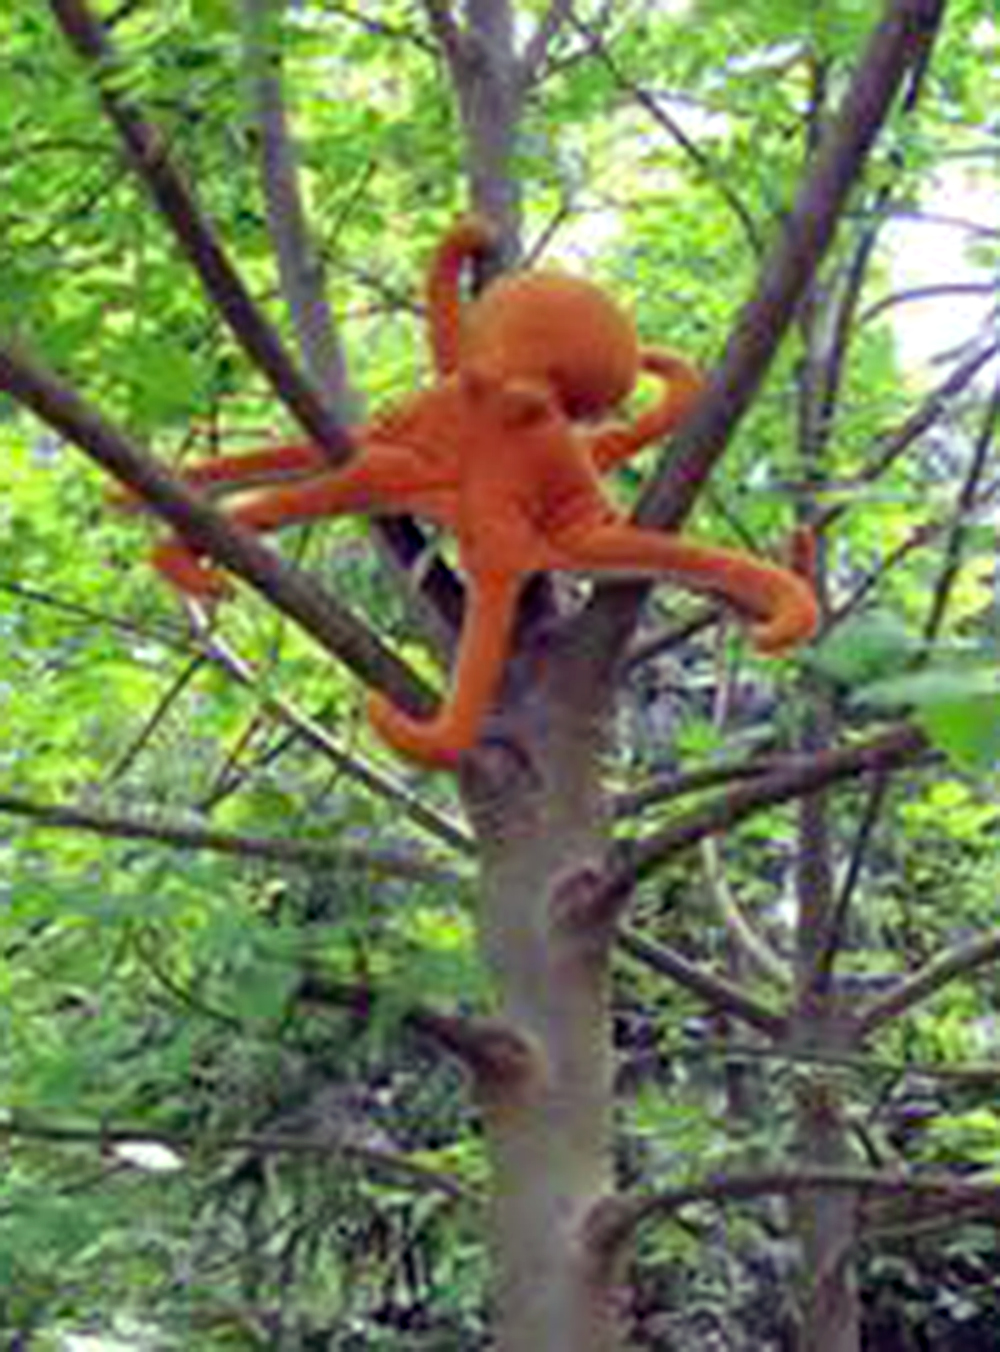 SCVNews.com | Opinion/Commentary: Save the Tree Octopus ...